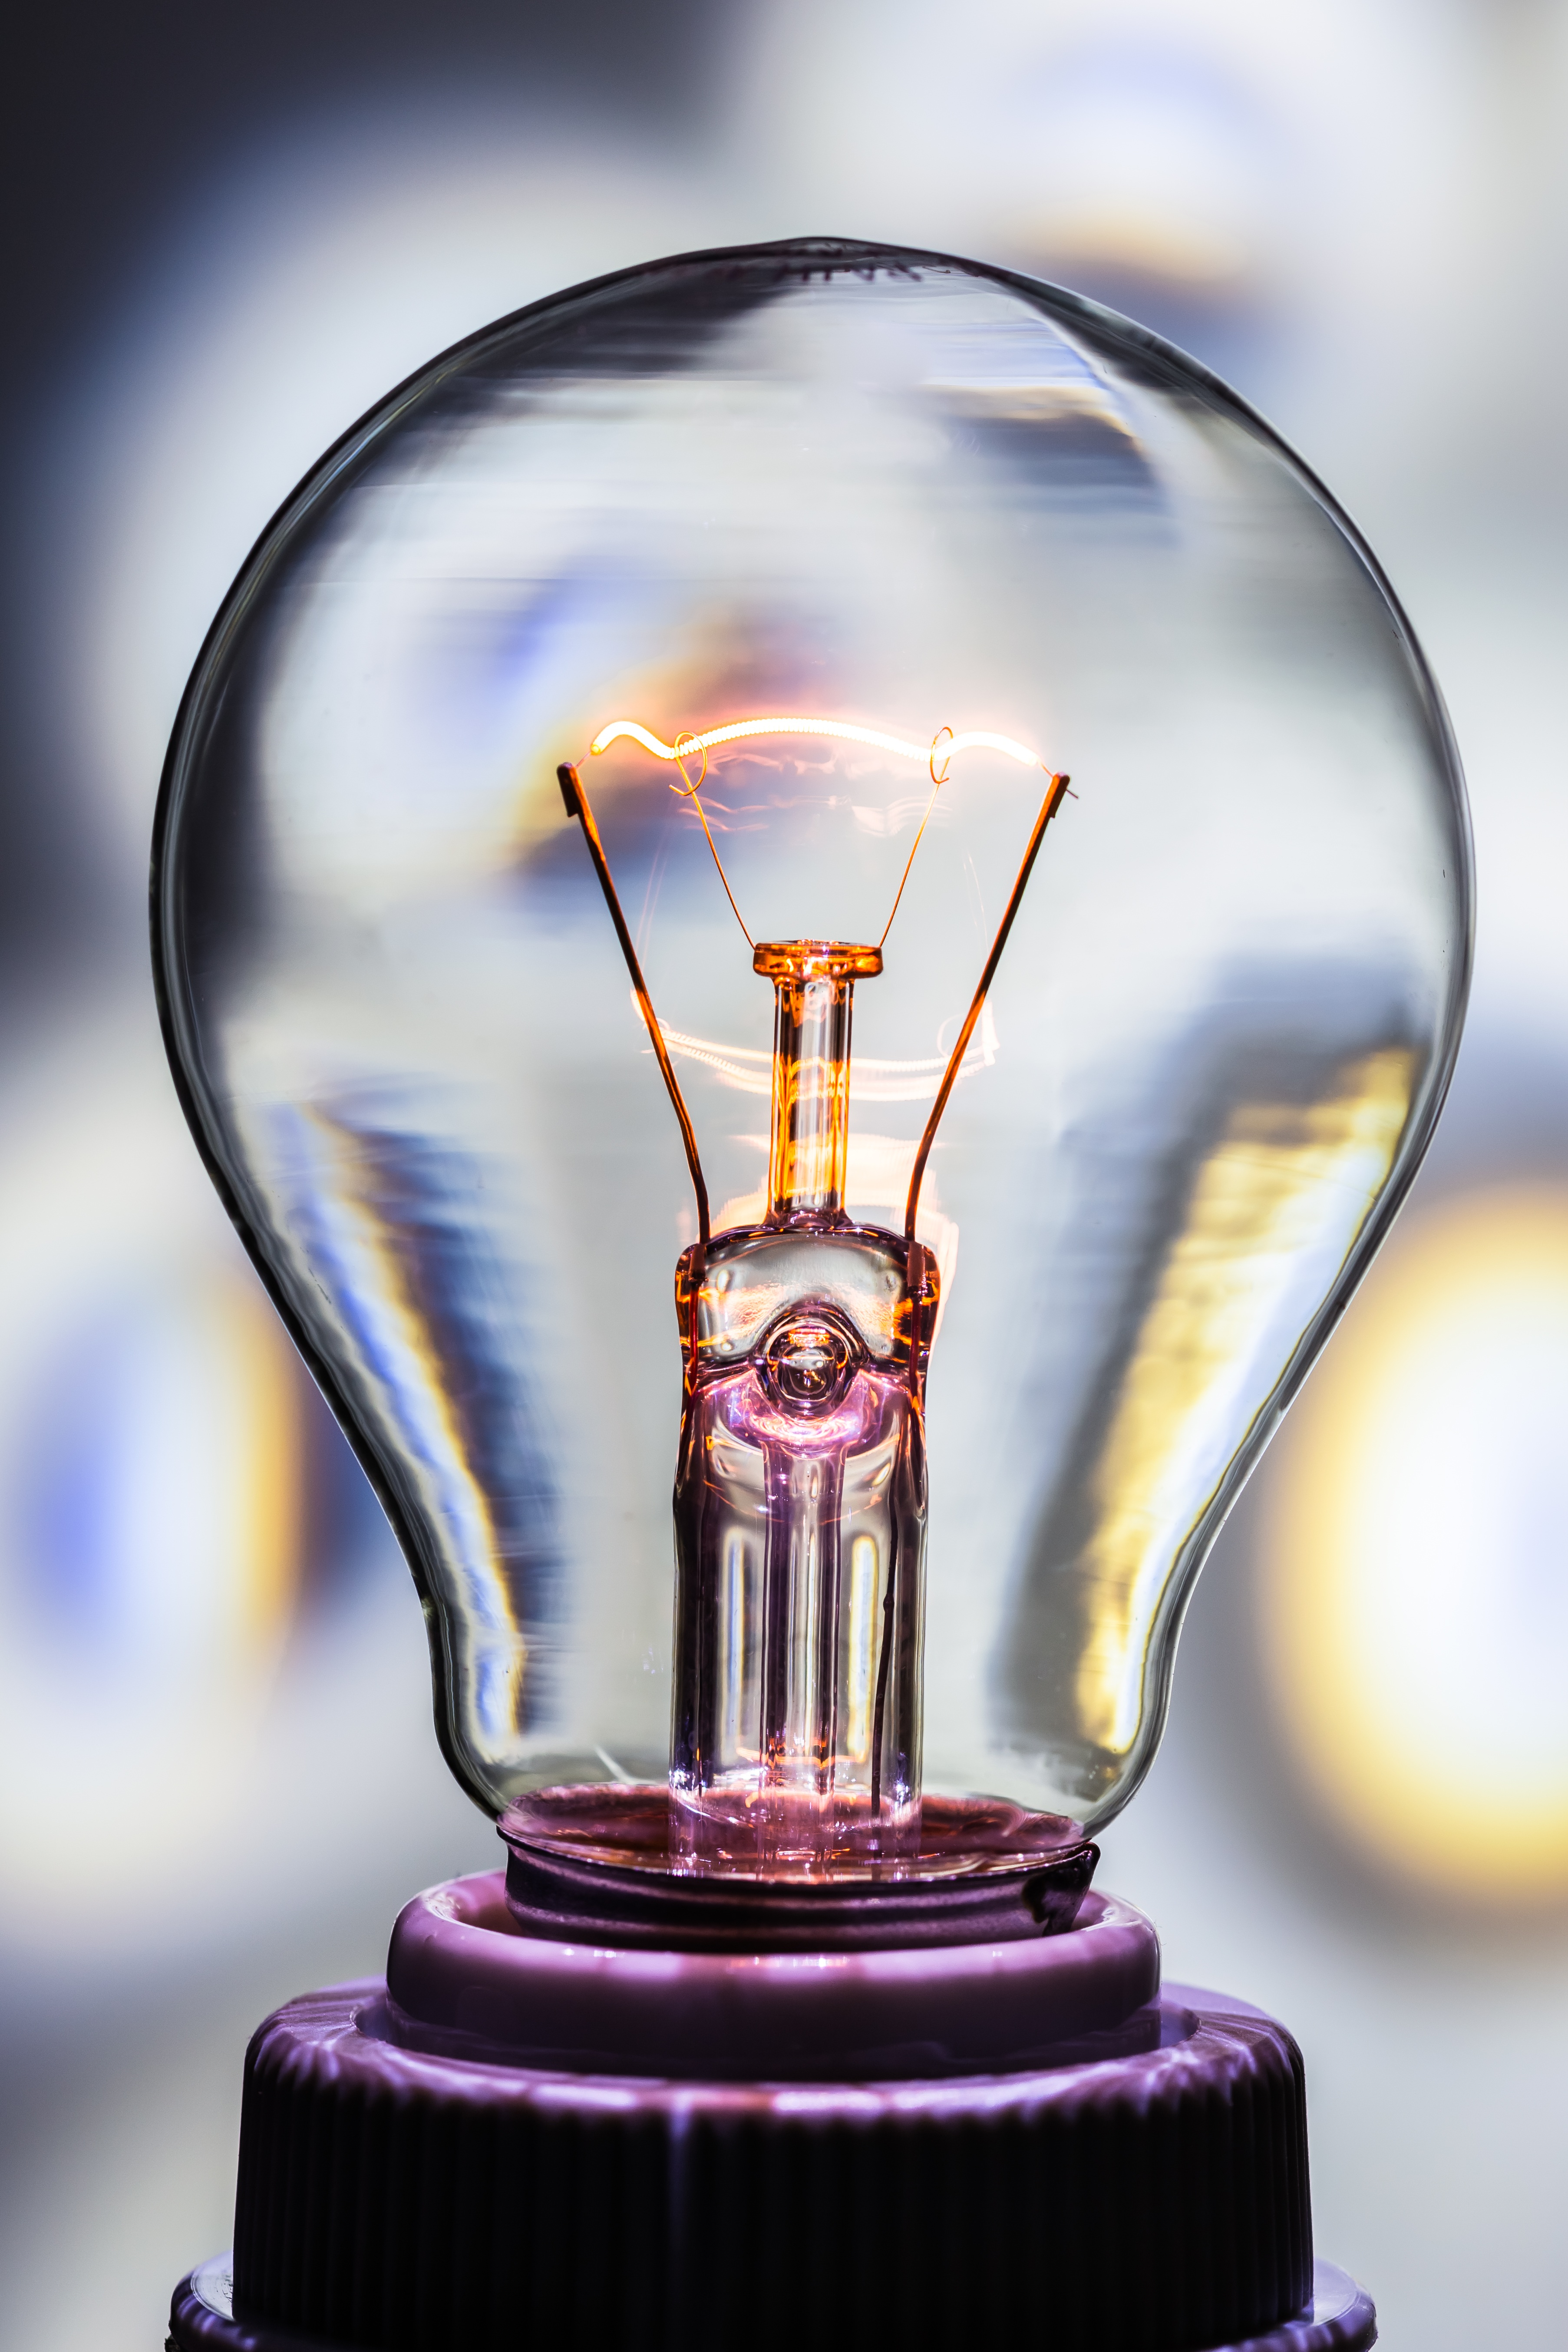 How Long Does It Take To Change A Light Bulb? (Marriage ...